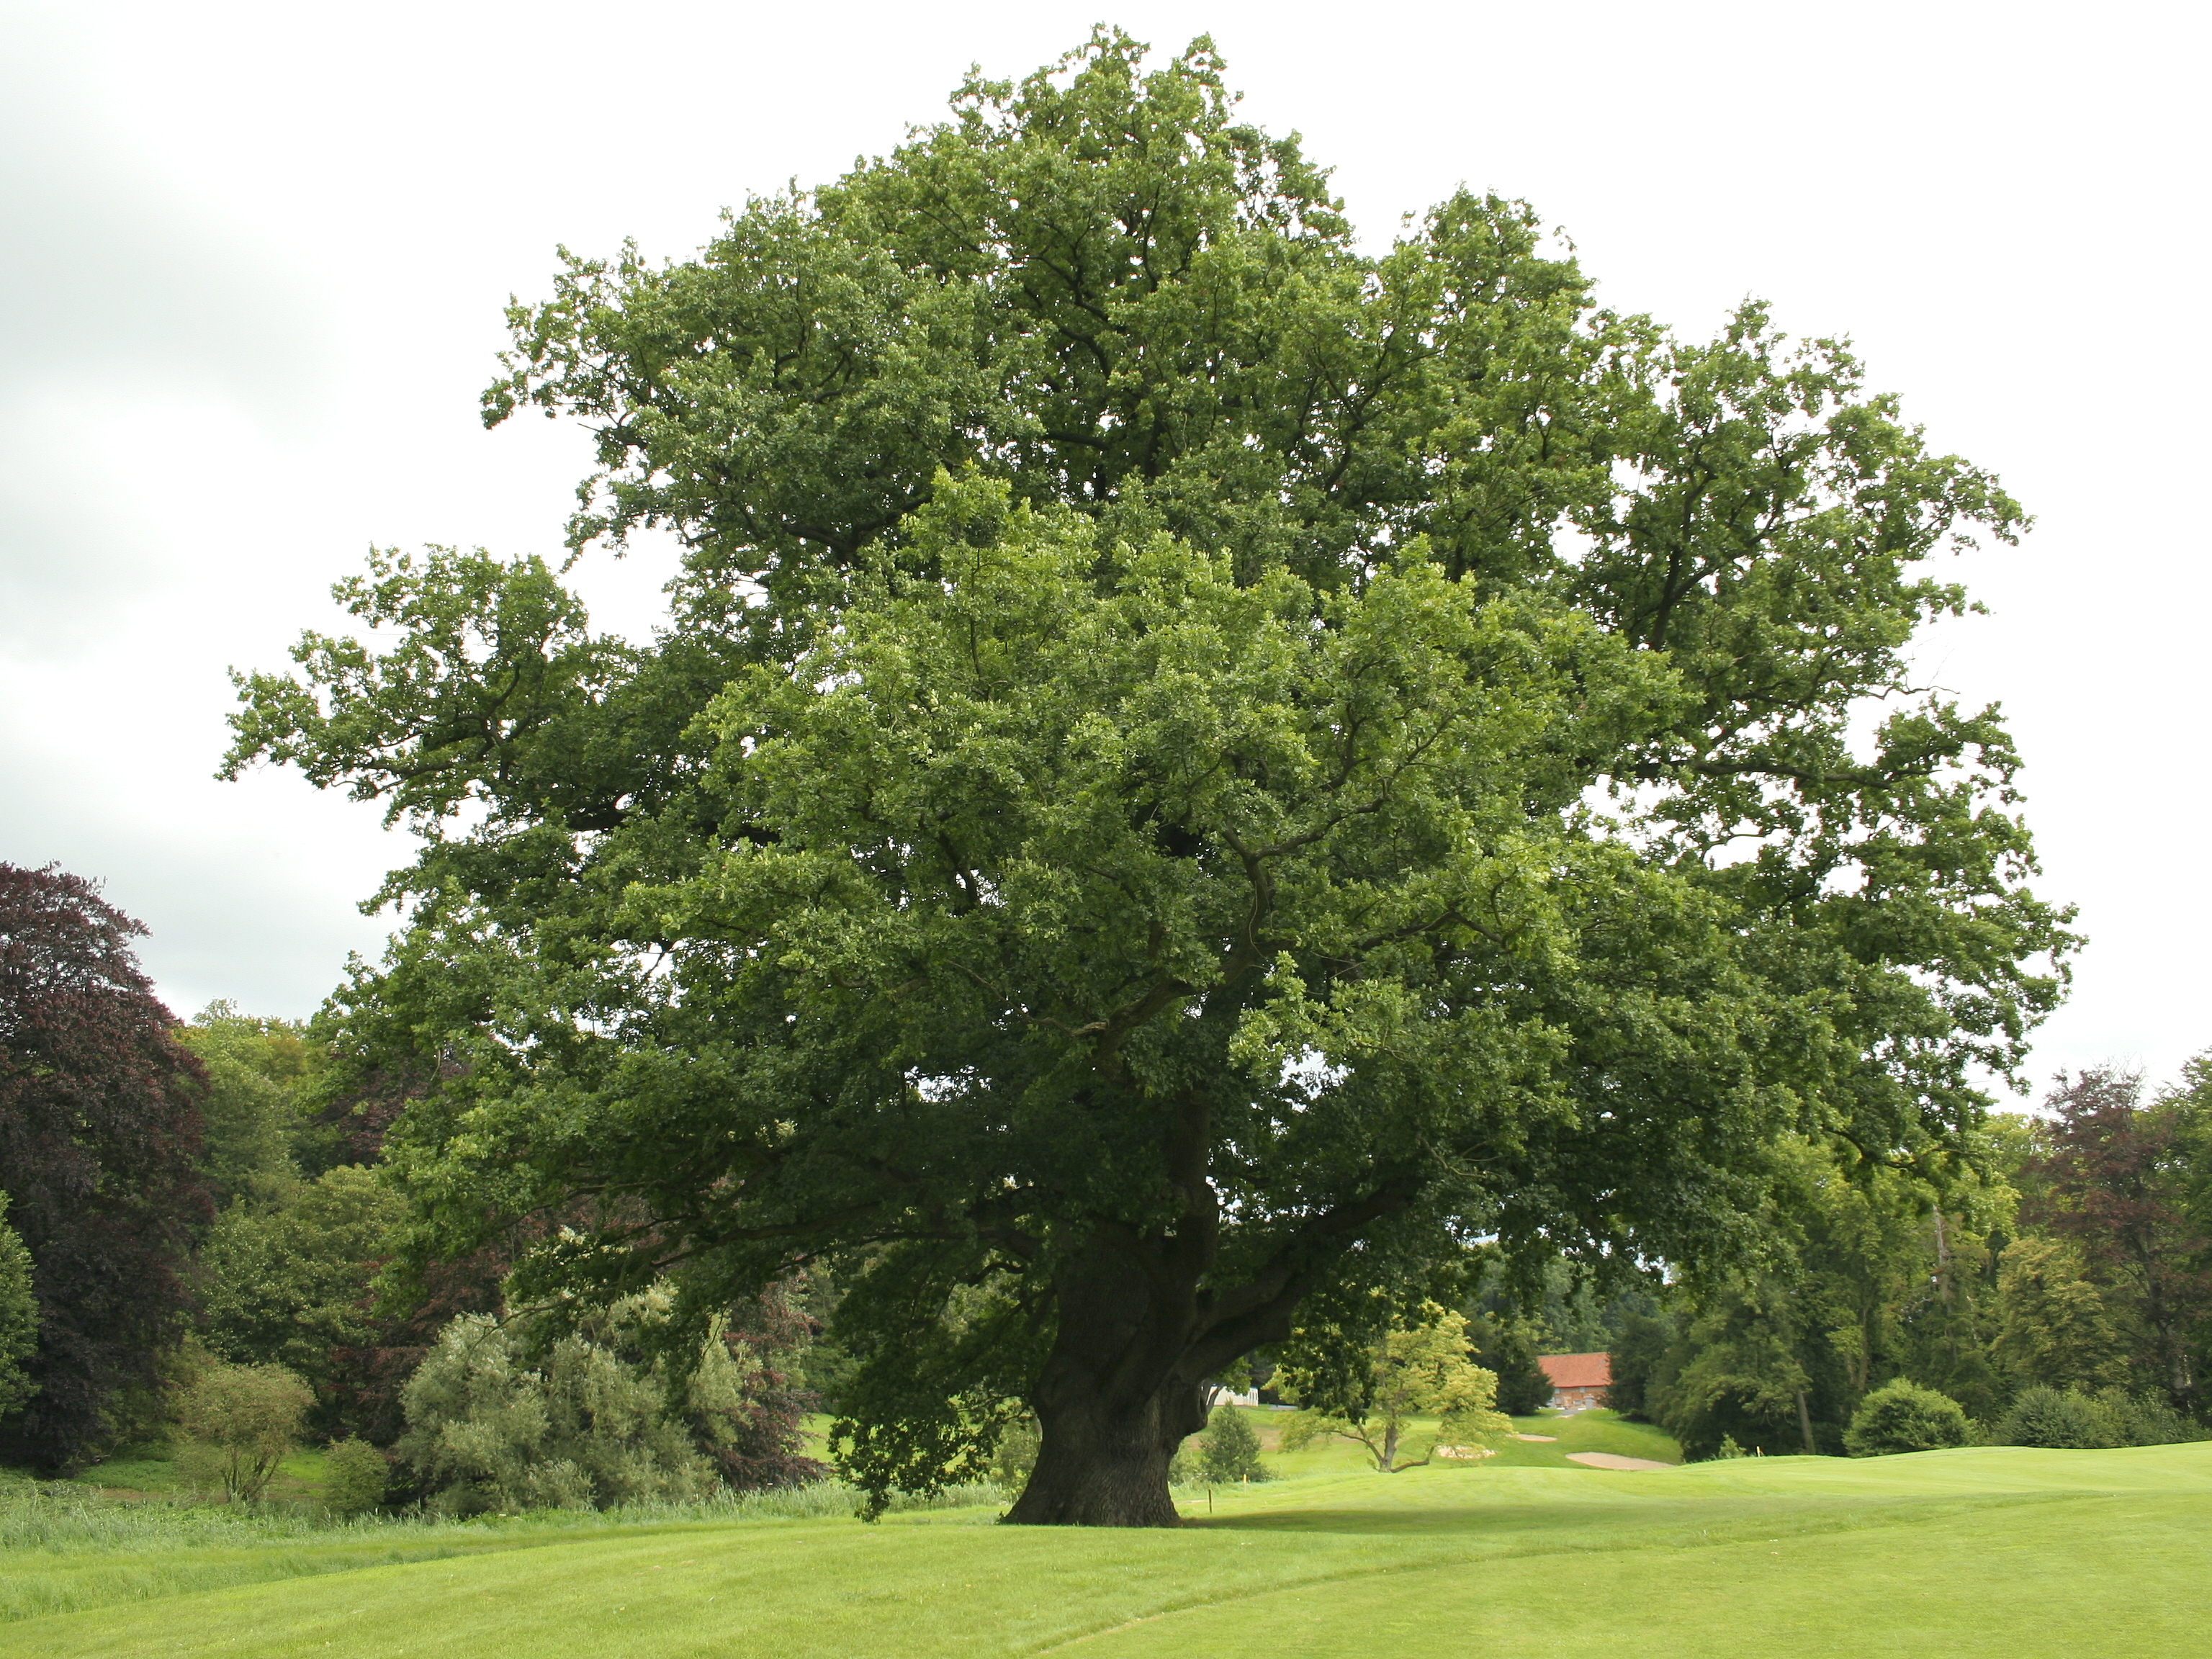 File:Quercus robur JPG (d1).jpg - Wikimedia Commons